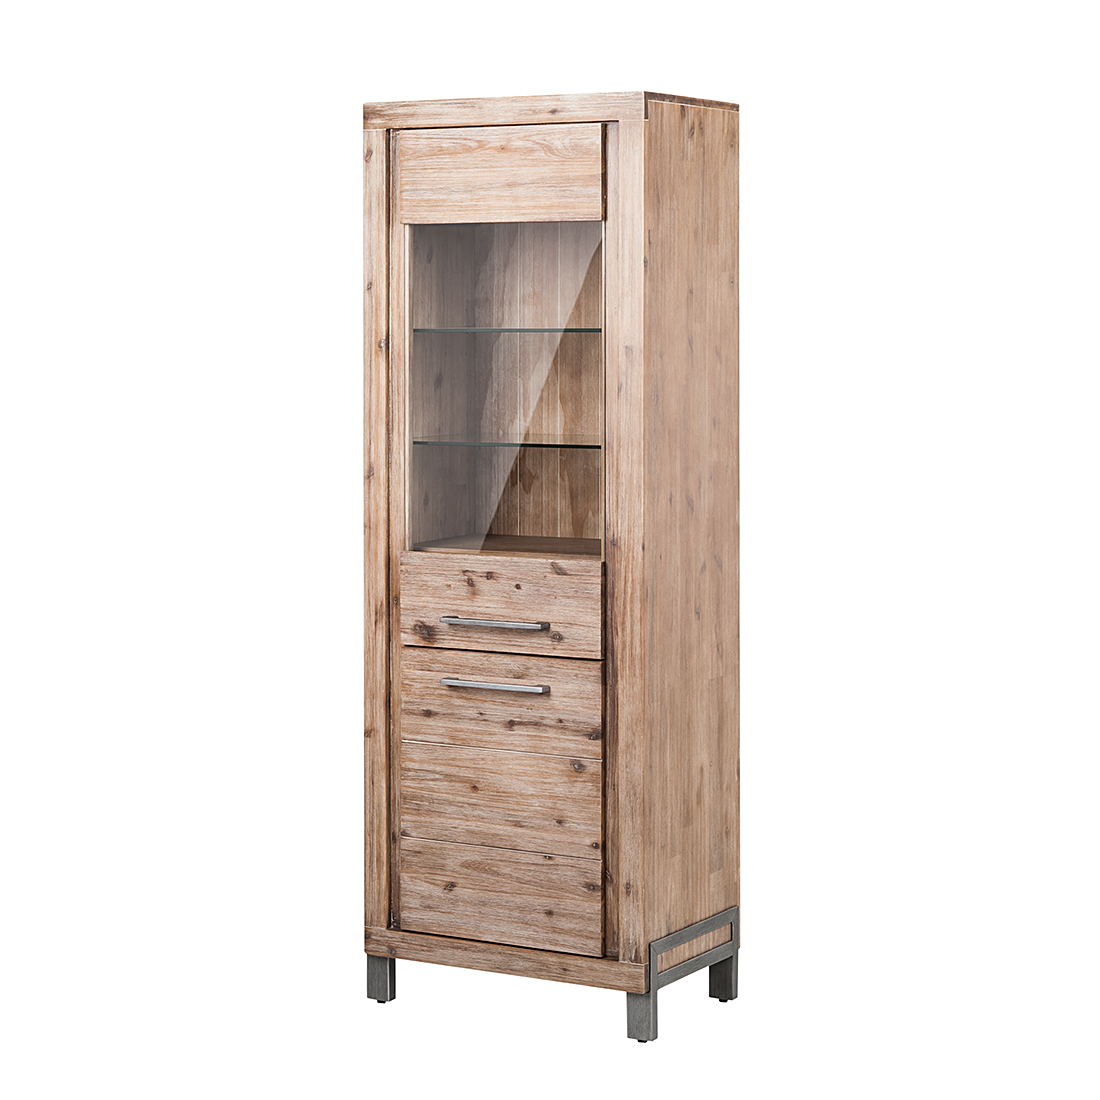 vitrine schrank massivholz akazie grau kommode highboard. Black Bedroom Furniture Sets. Home Design Ideas